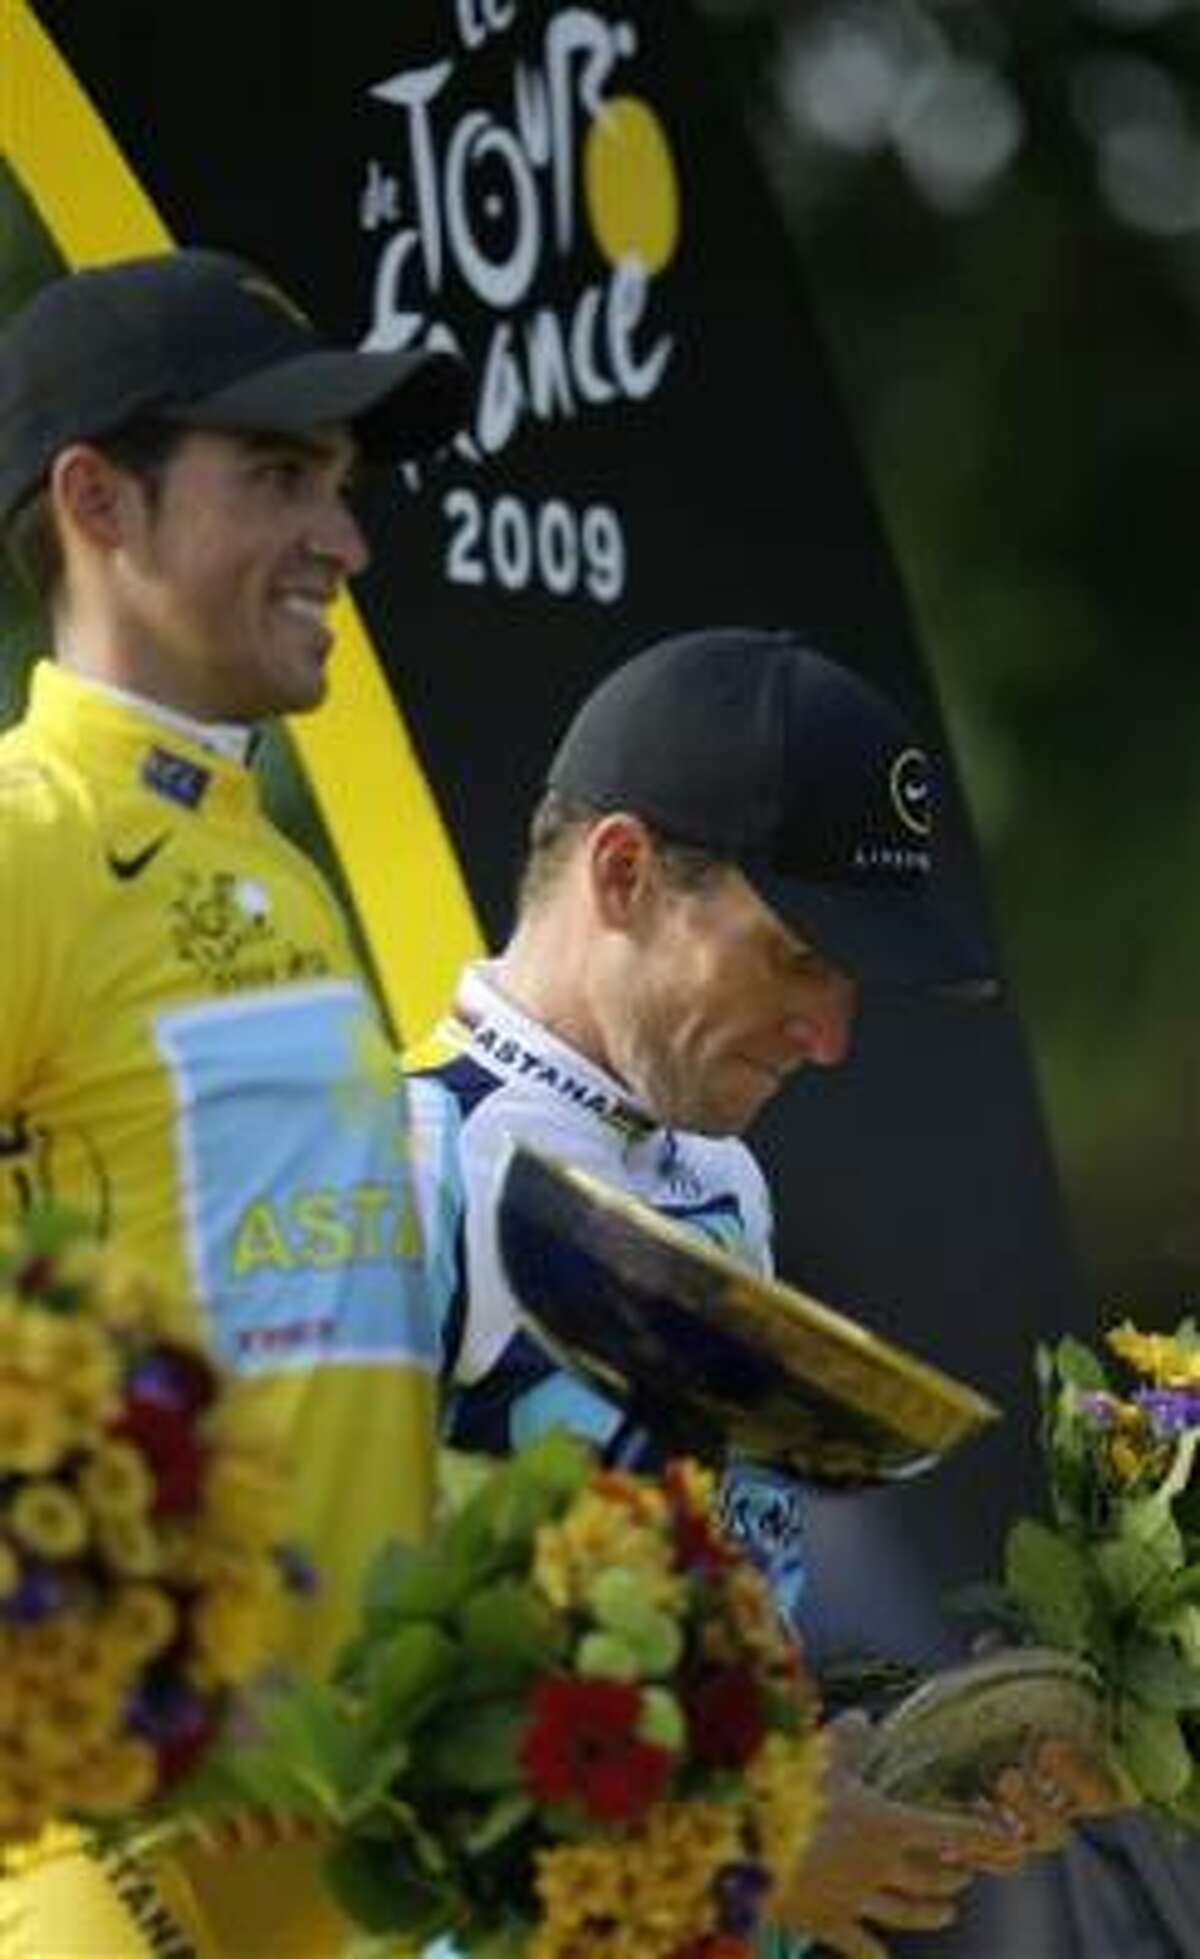 Tour de France winner Alberto Contador of Spain, wearing the overall leader's yellow jersey, left, and third-placed, seven-time Tour de France winner Lance Armstrong, react on the podium after the 21st stage of the Tour de France on Sunday.